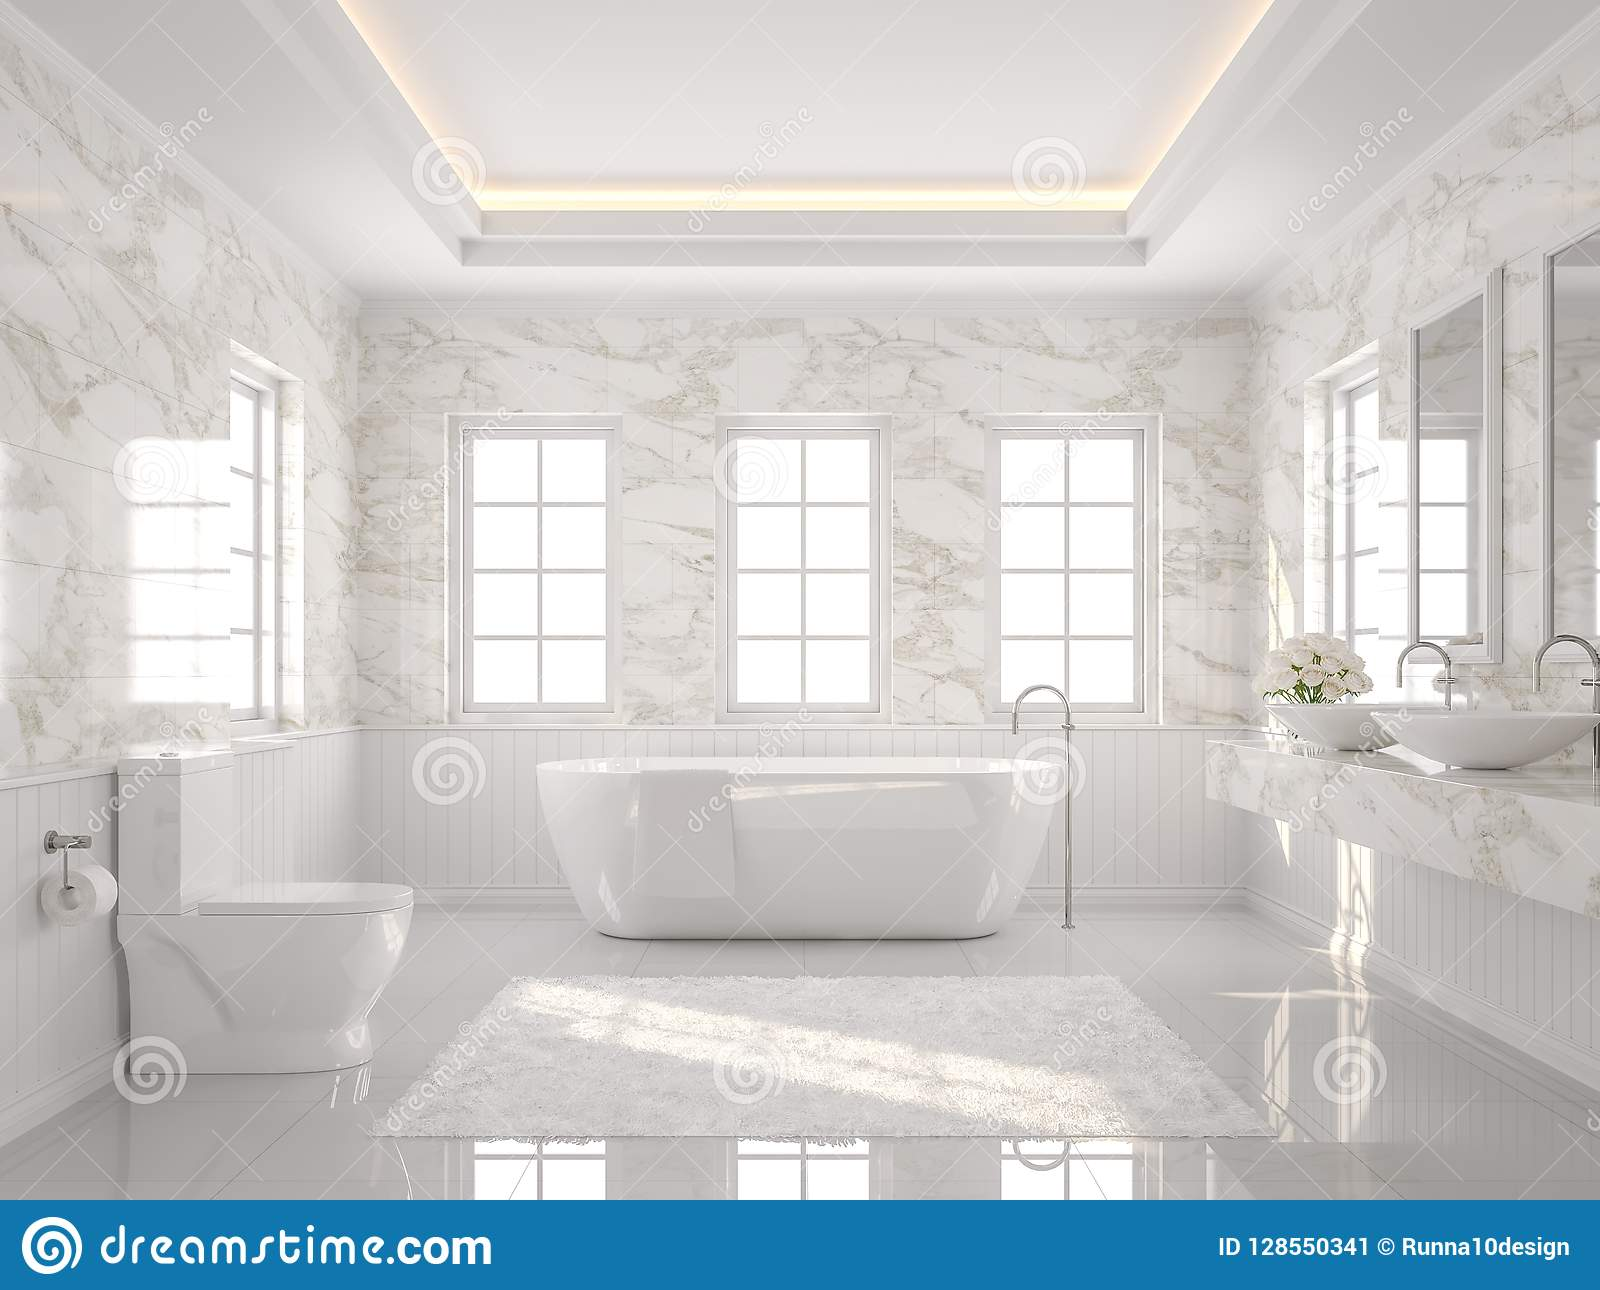 Luxury White Bathroom With Marble Wall 3d Render Stock Illustration Illustration Of Marble